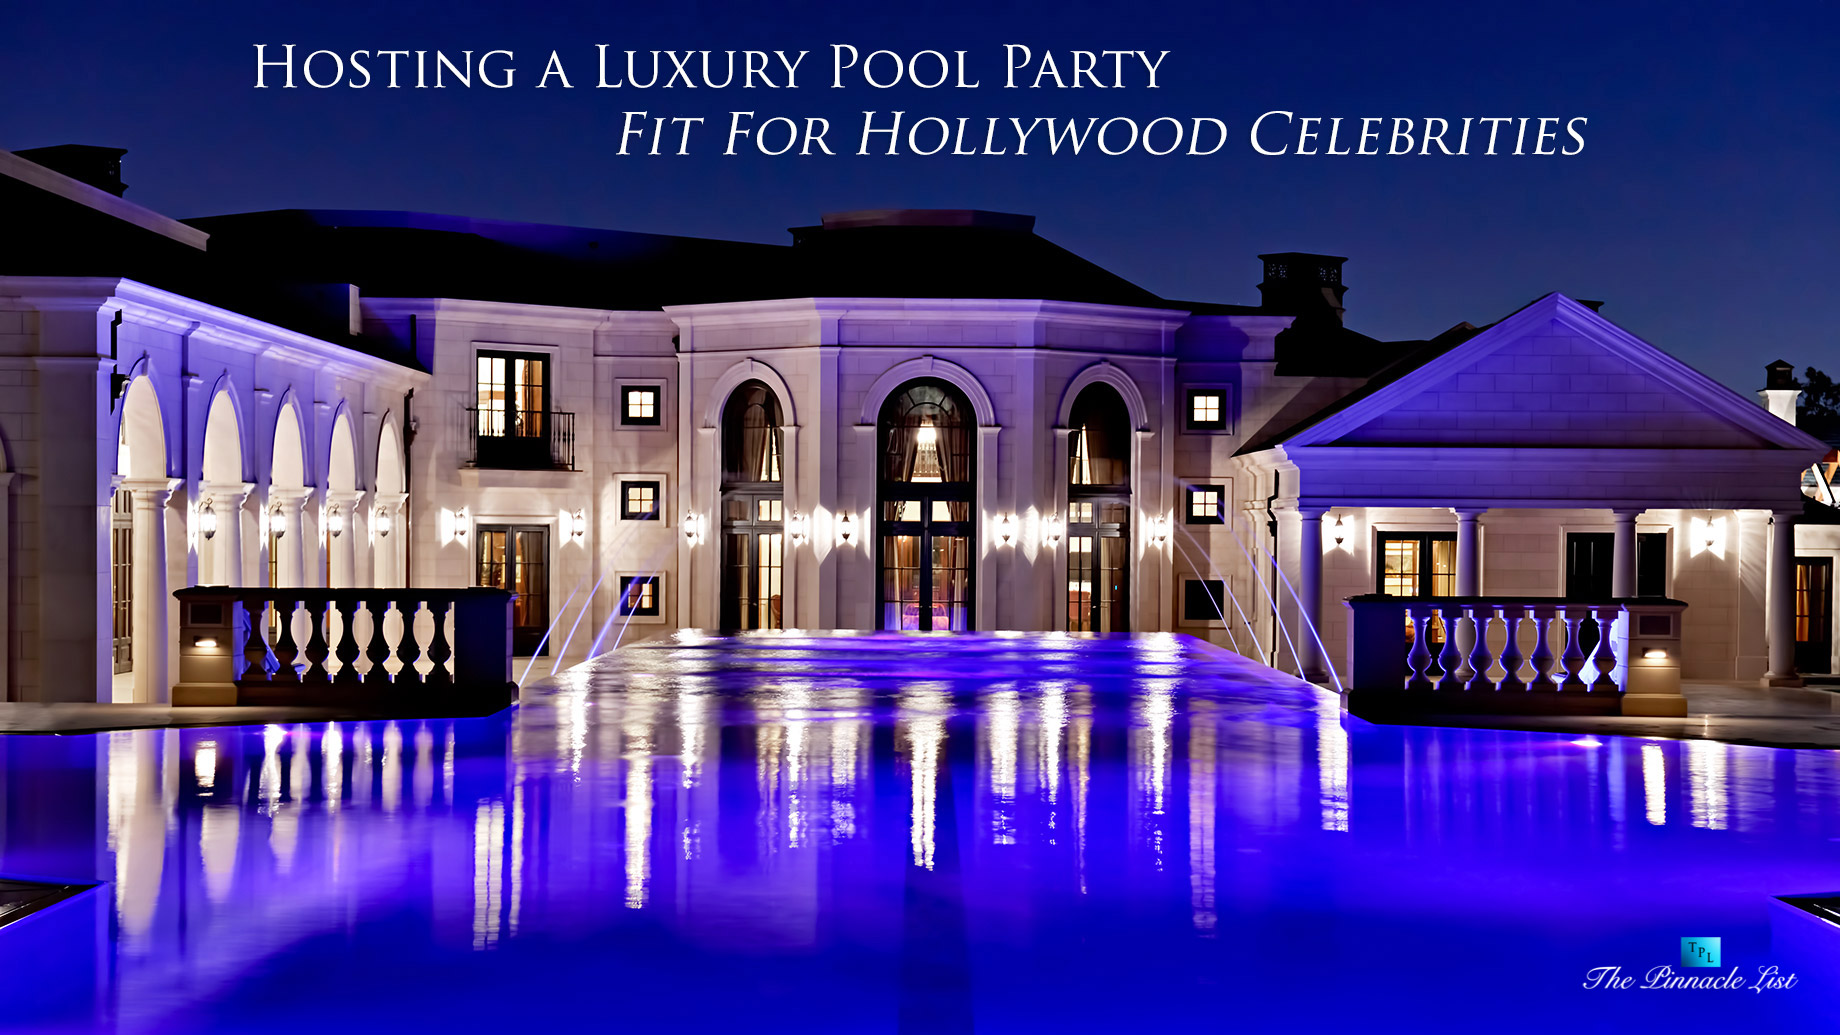 Hosting a Luxury Pool Party Fit For Hollywood Celebrities